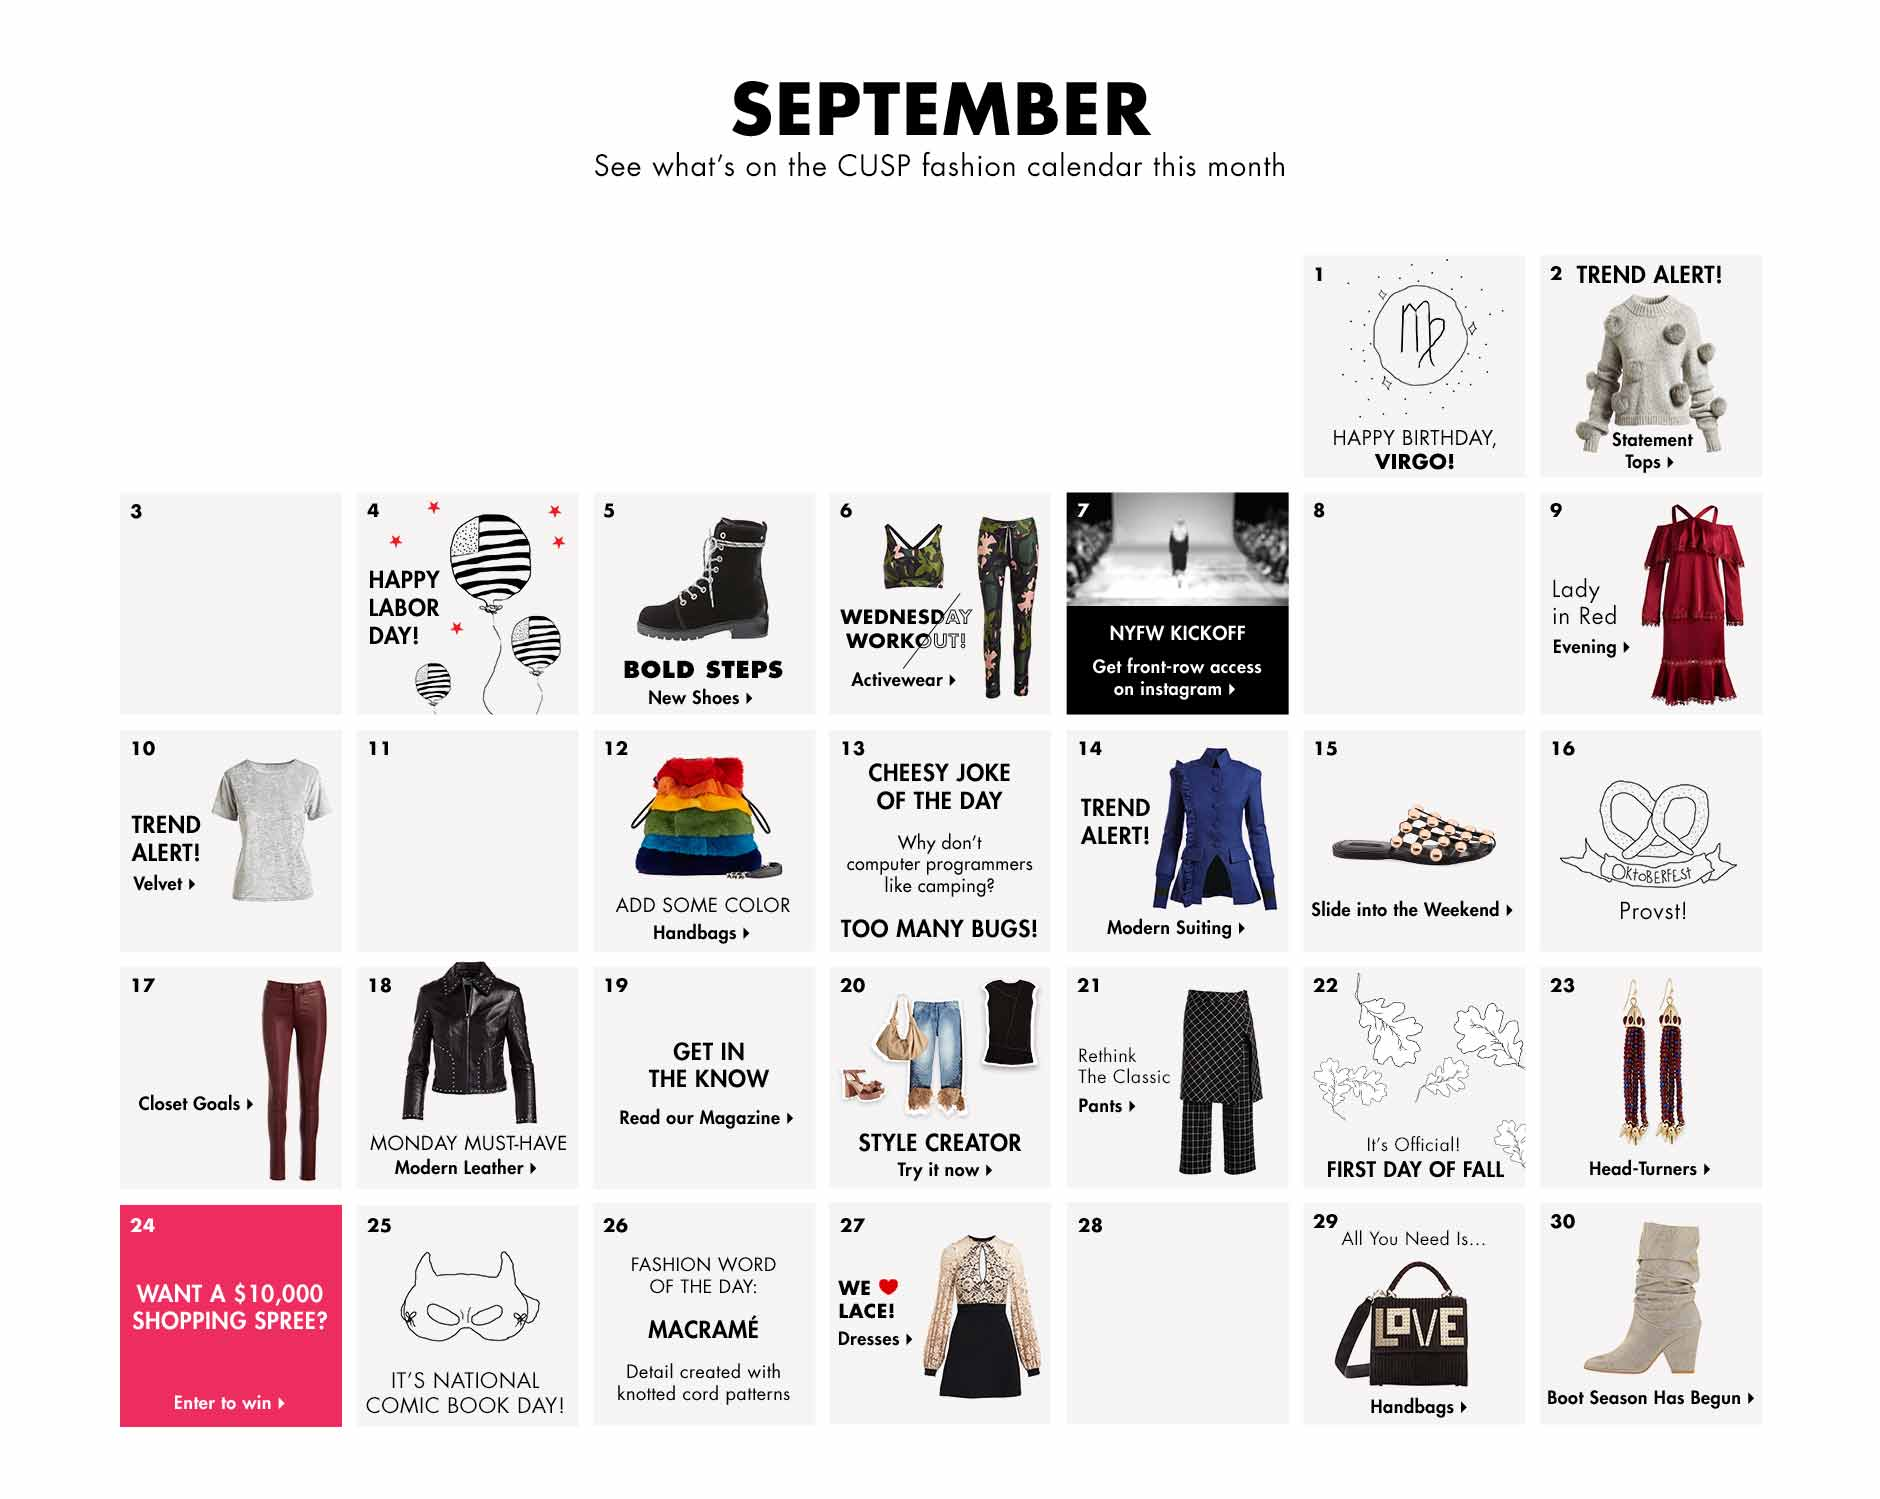 September - See what's on the CUSP fashion calendar this month